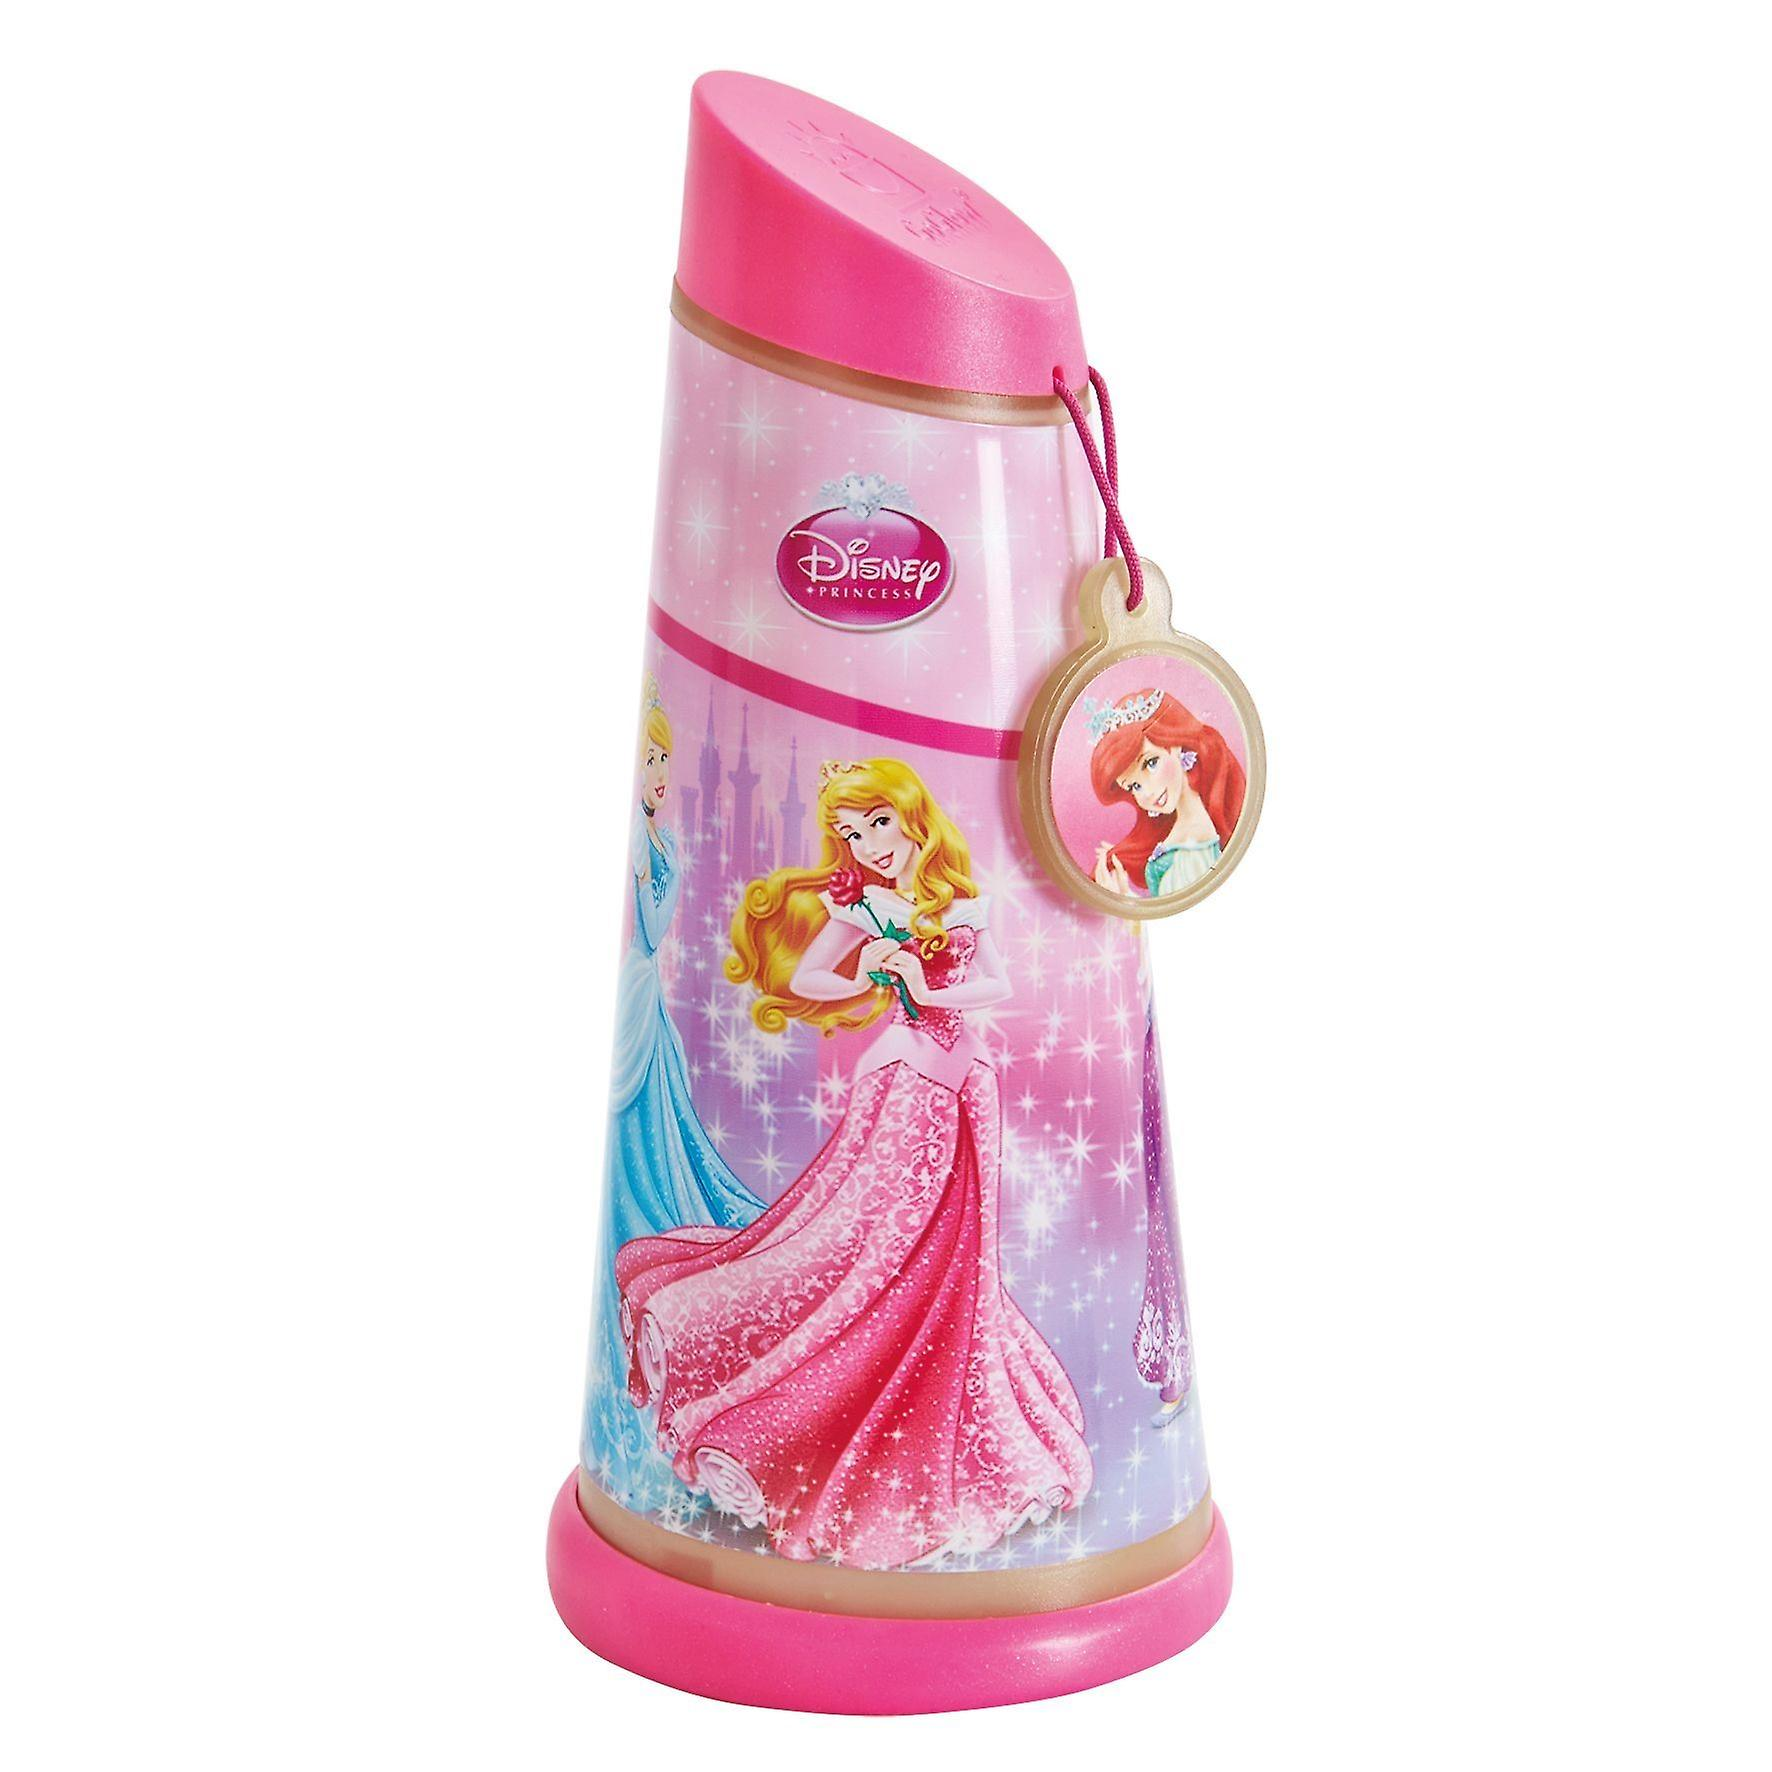 Princess night lamp with torch